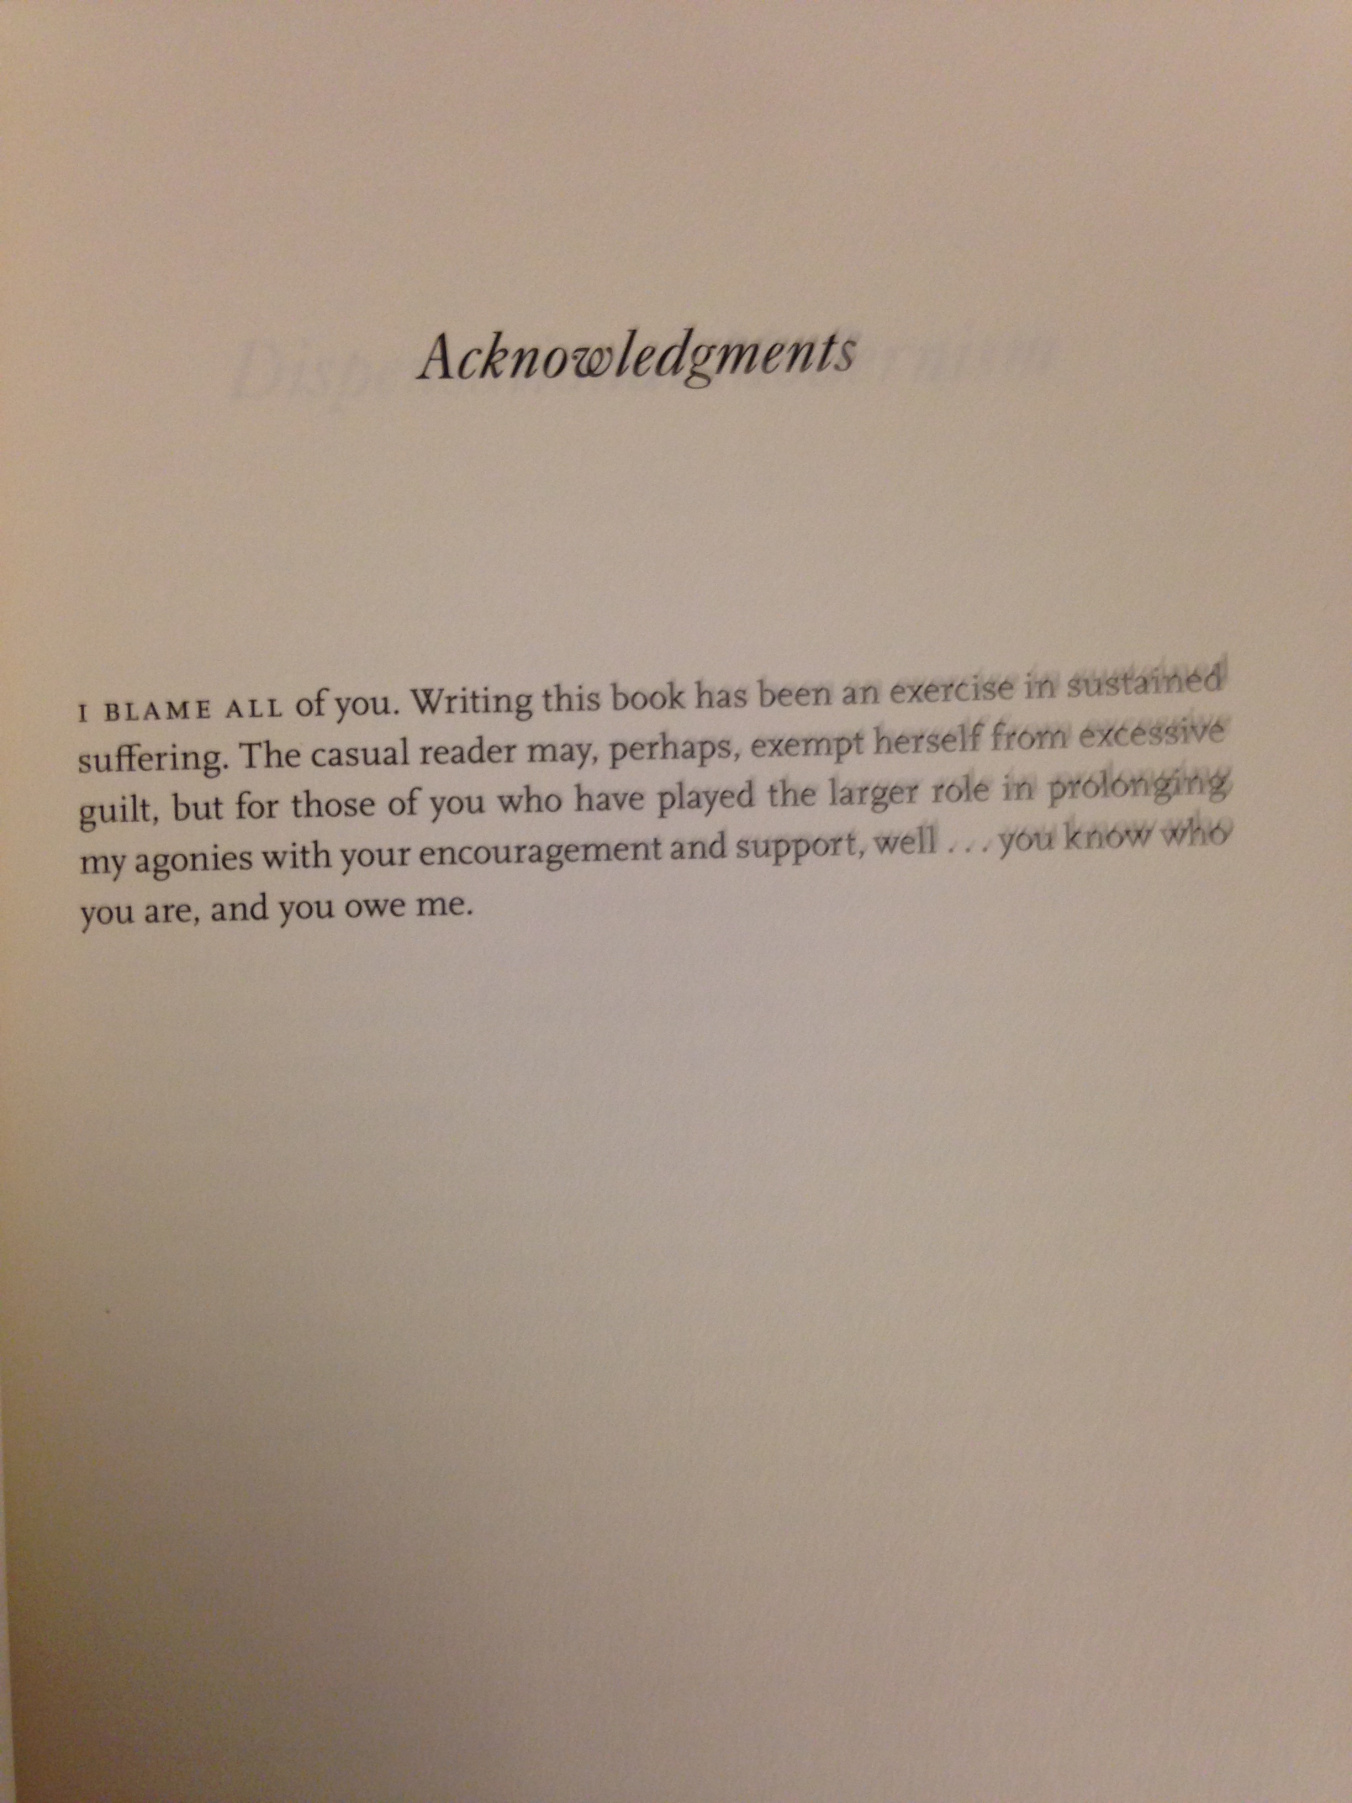 funniest thesis acknowledgements